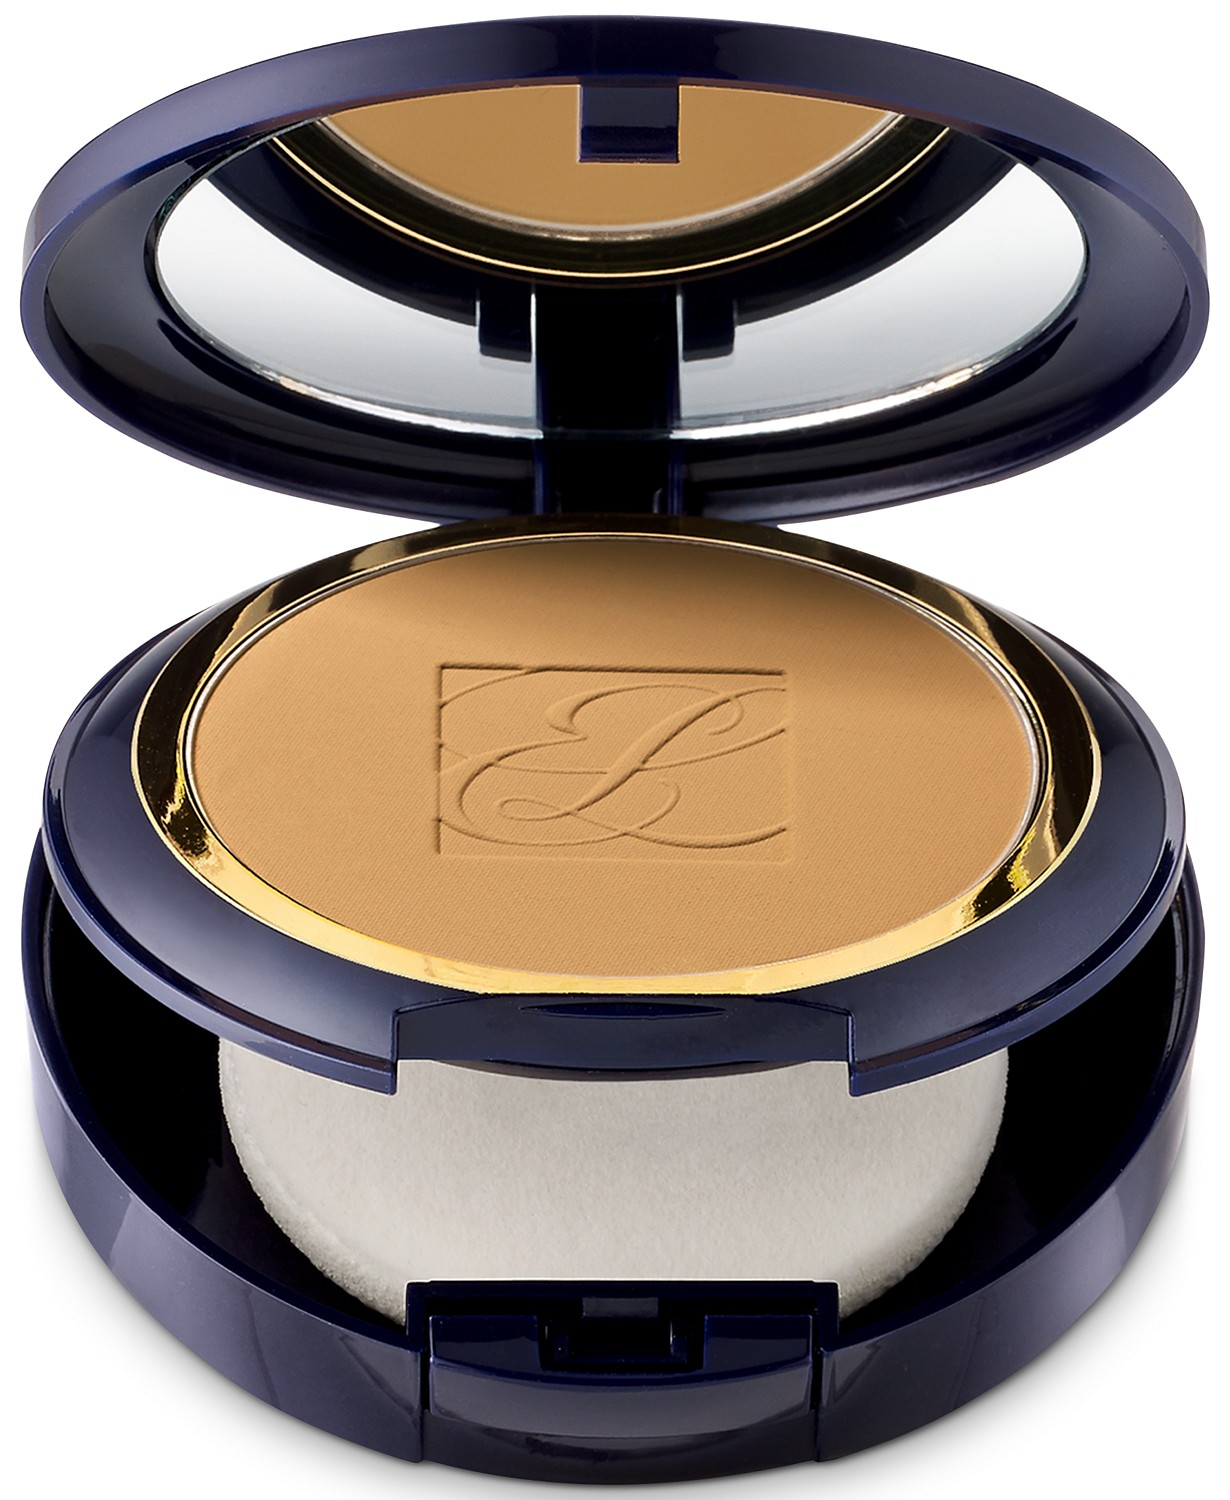 Save 50% on Estee Lauder Double Wear Stay-in-Place Powder Makeup, 0.42 oz.